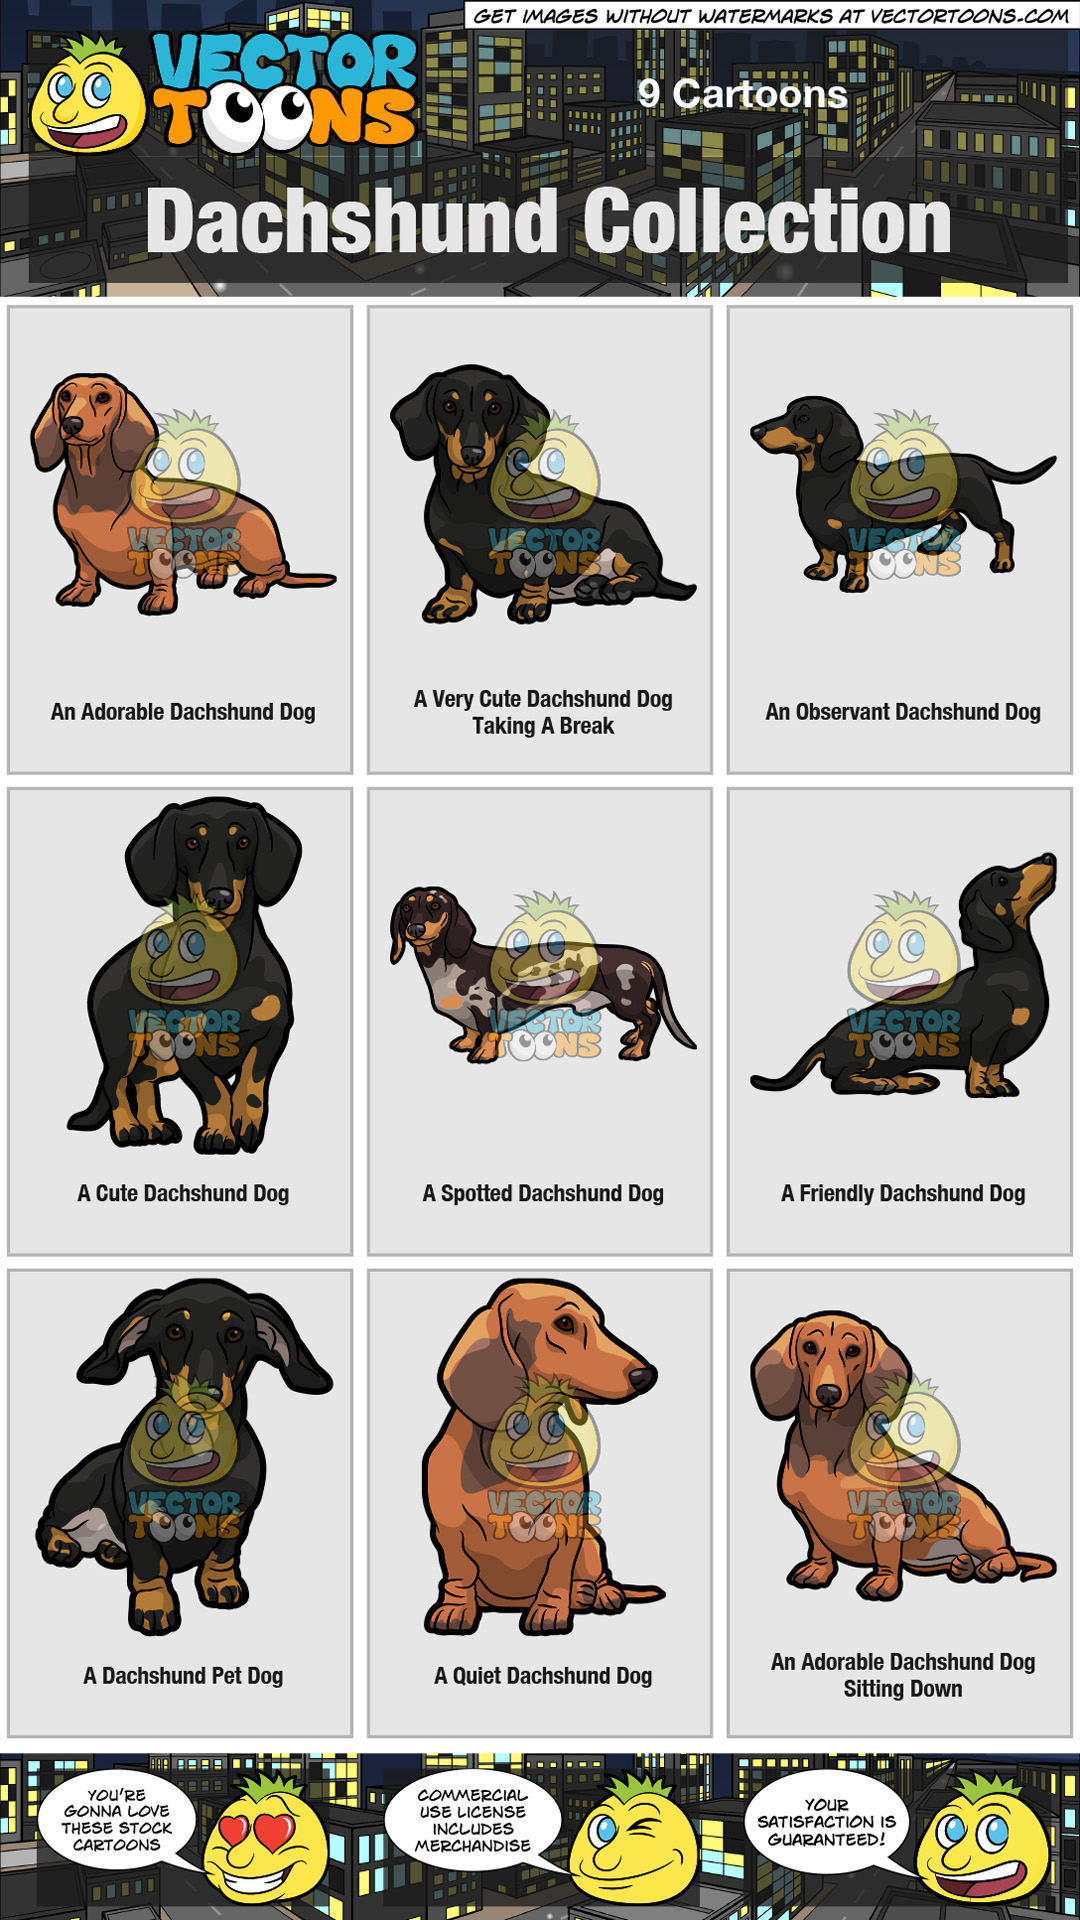 Dachshund Collection thumbnail